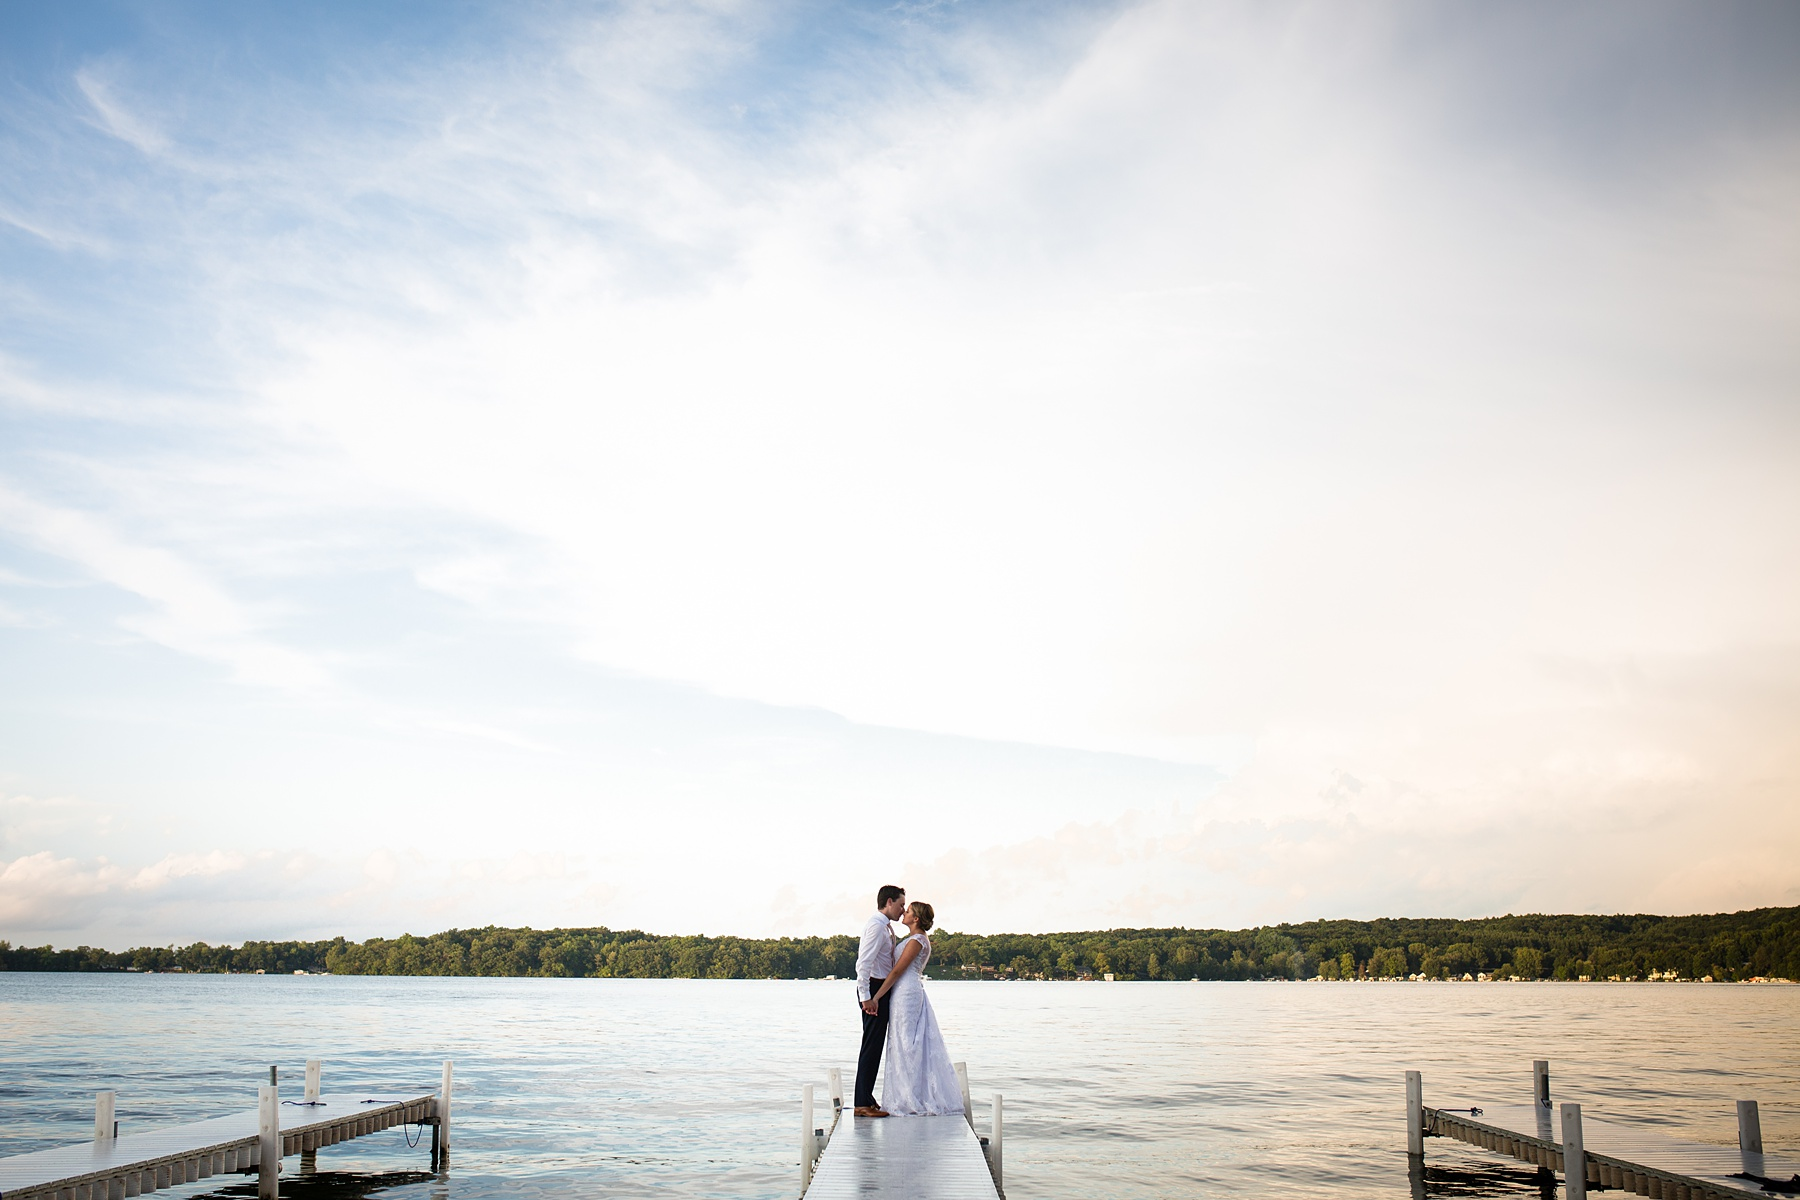 Brandon_Shafer_Photography_Emily_Steve_Bay_Pointe_GunLake_Wedding_0057.jpg